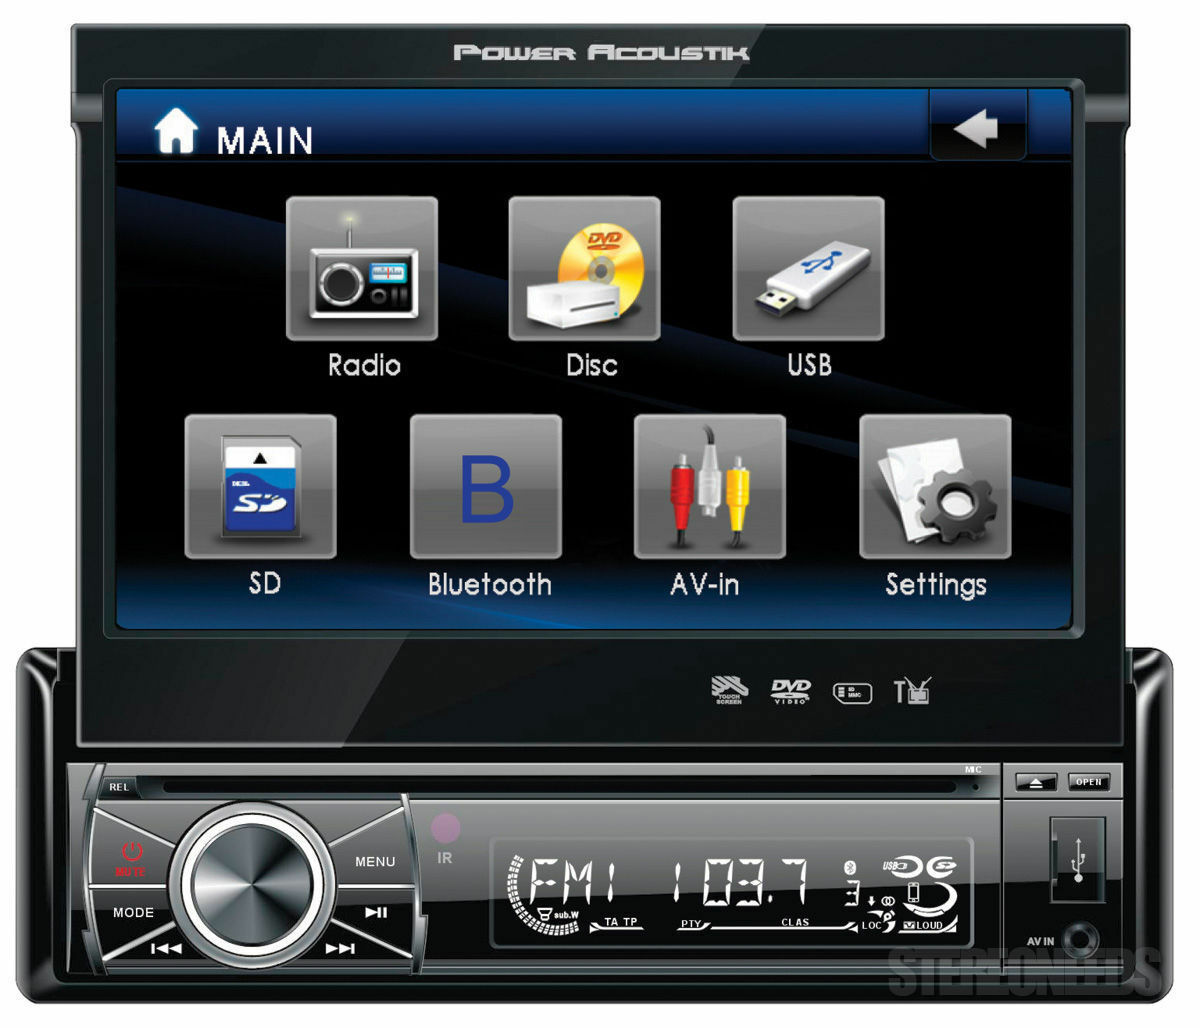 s l1600 power acoustik video in dash units without gps ebay soundstream vr-931nb wire harness at n-0.co